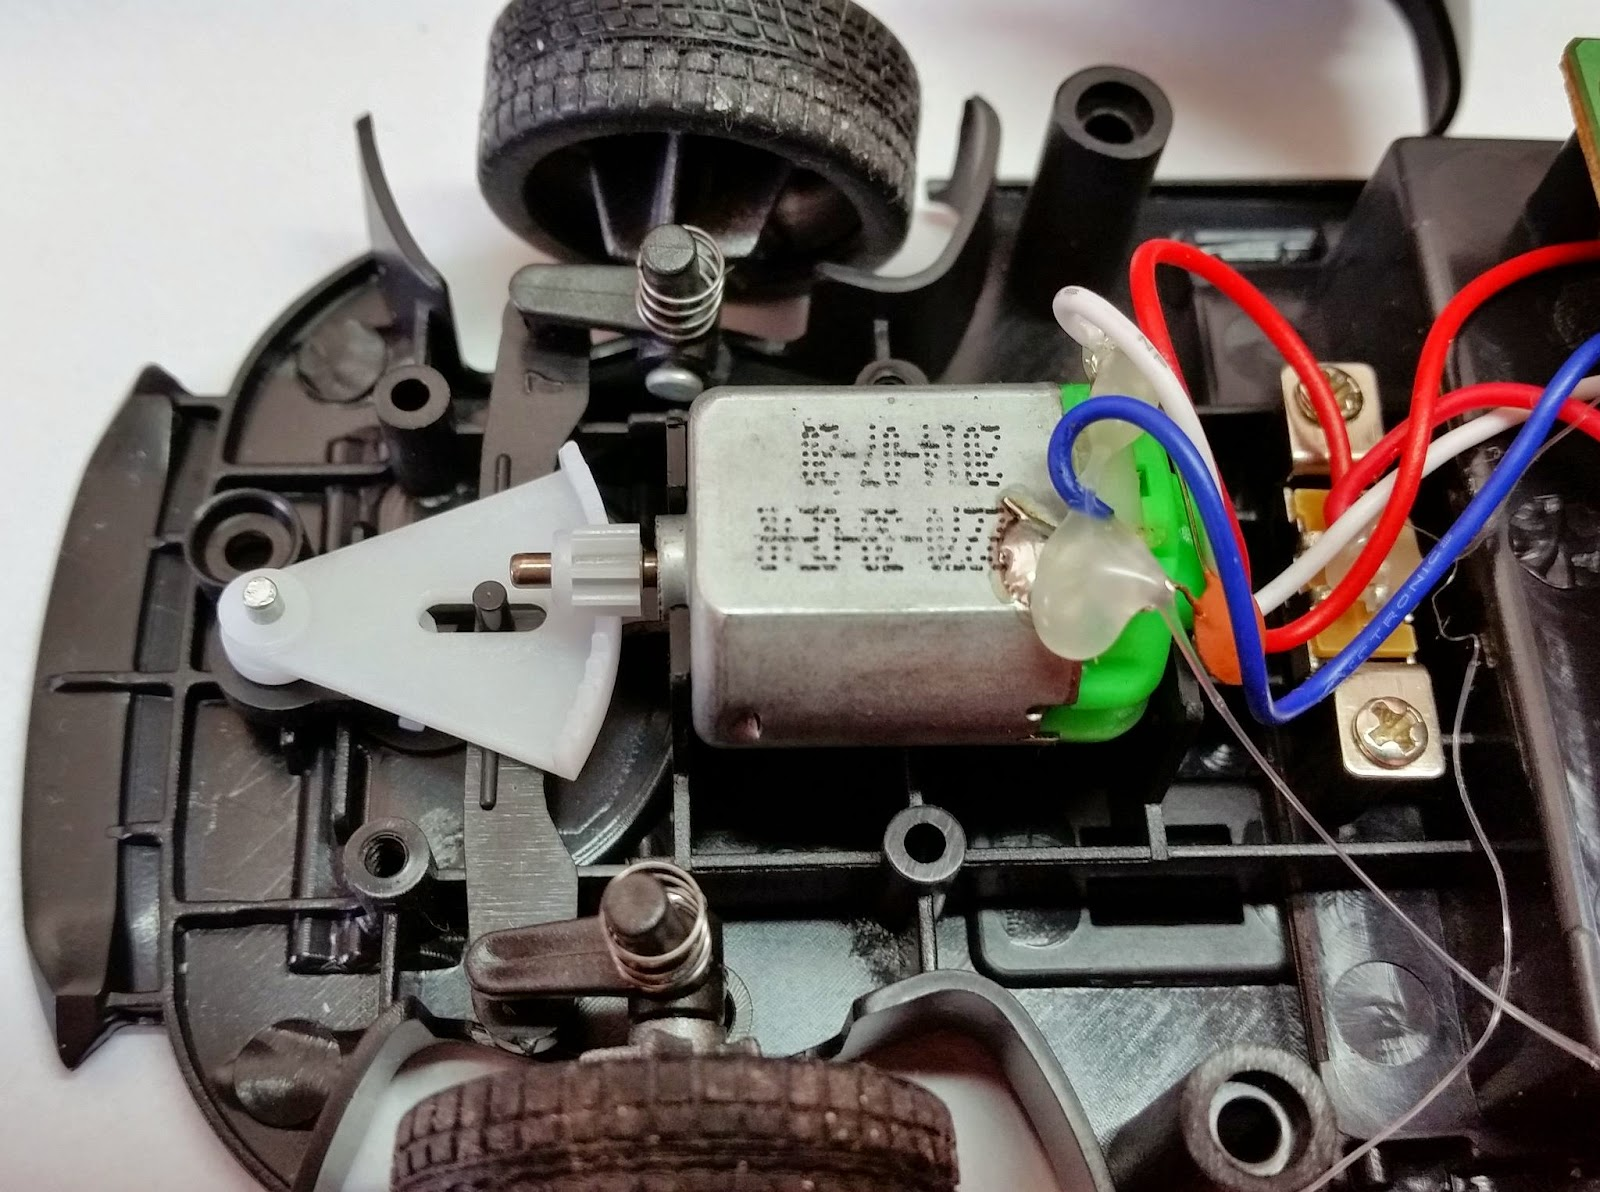 Hack Correlation: Convert A 27Mhz RC Car To 13.56Mhz